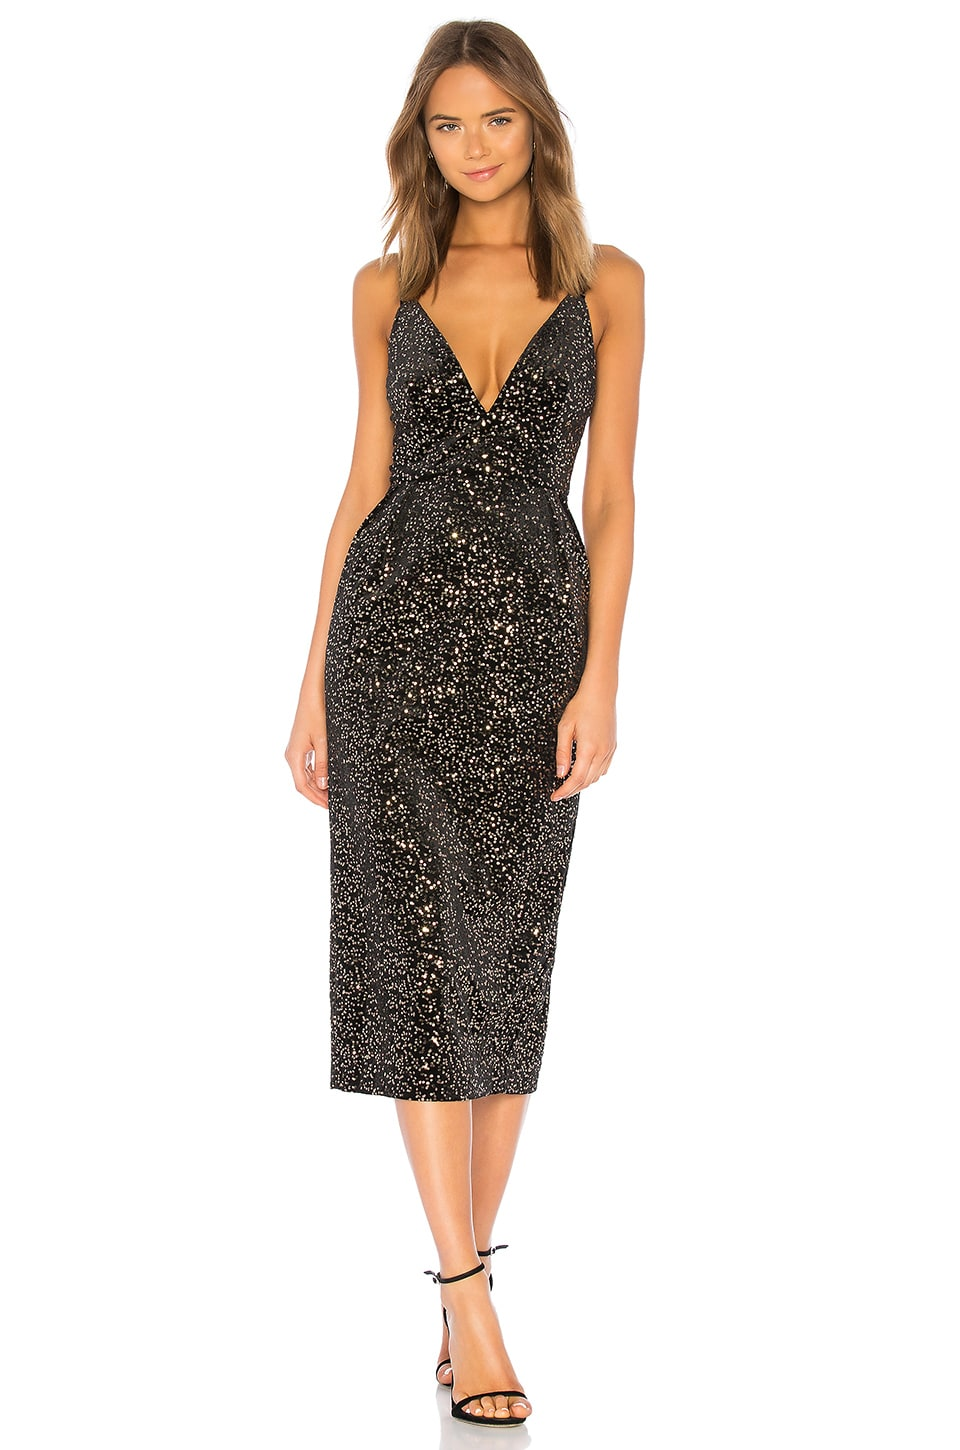 JILL JILL STUART Velvet Sequined Dress in Black & Gold